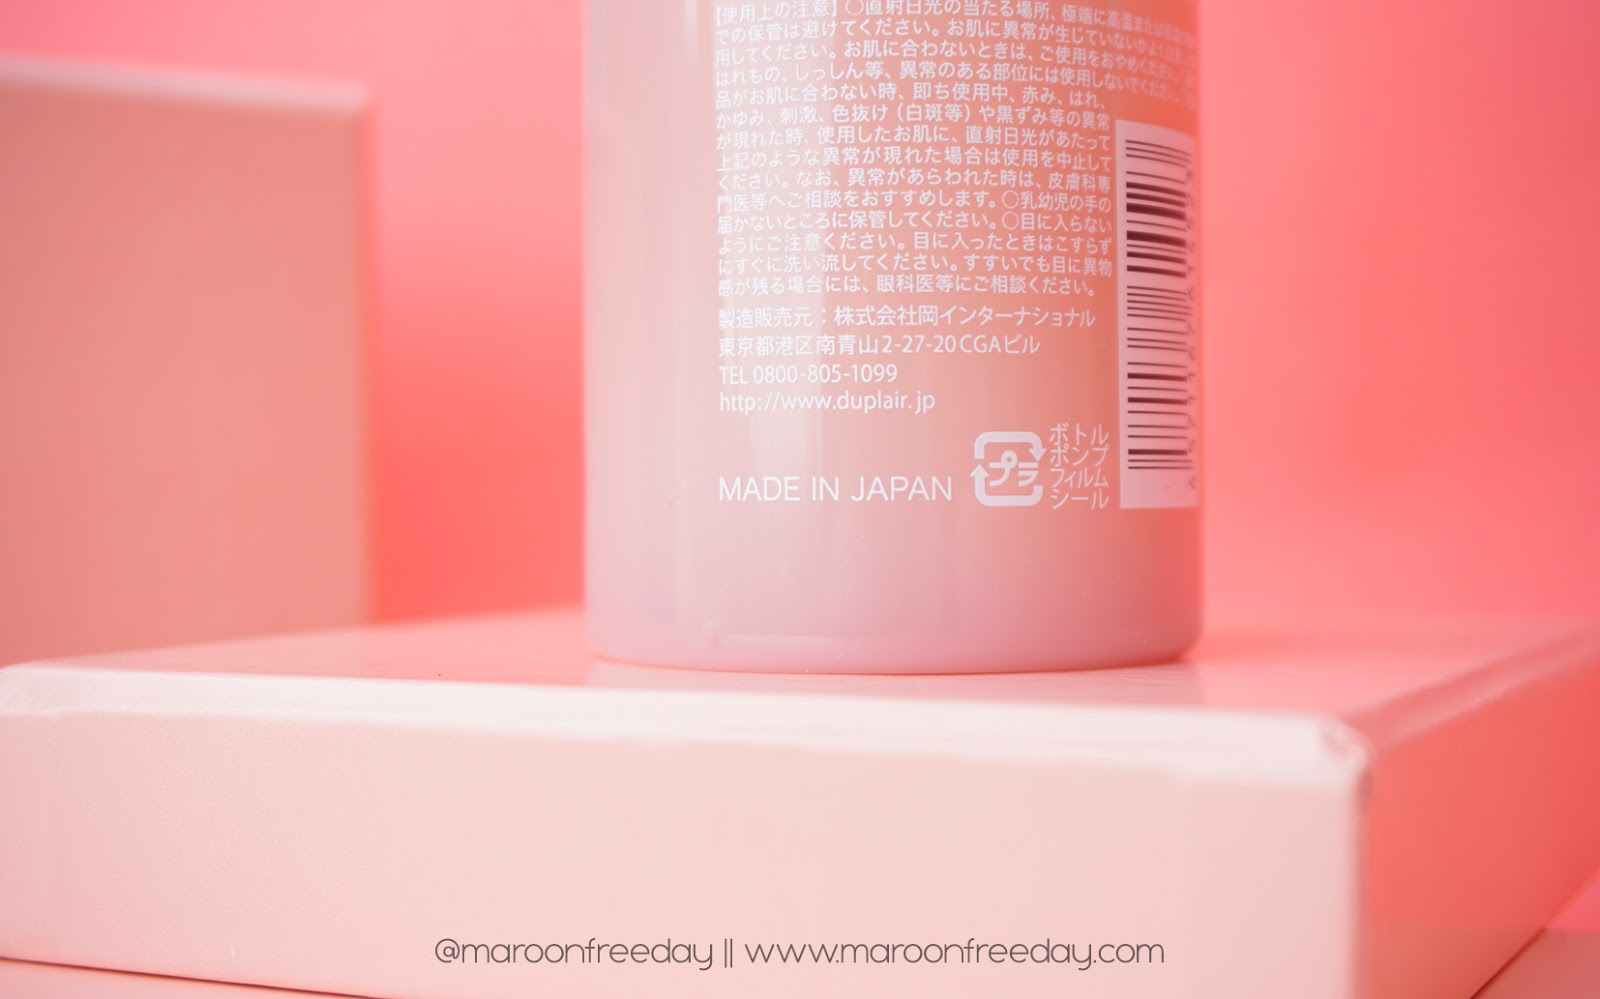 Review Duplair Cleansing Gel